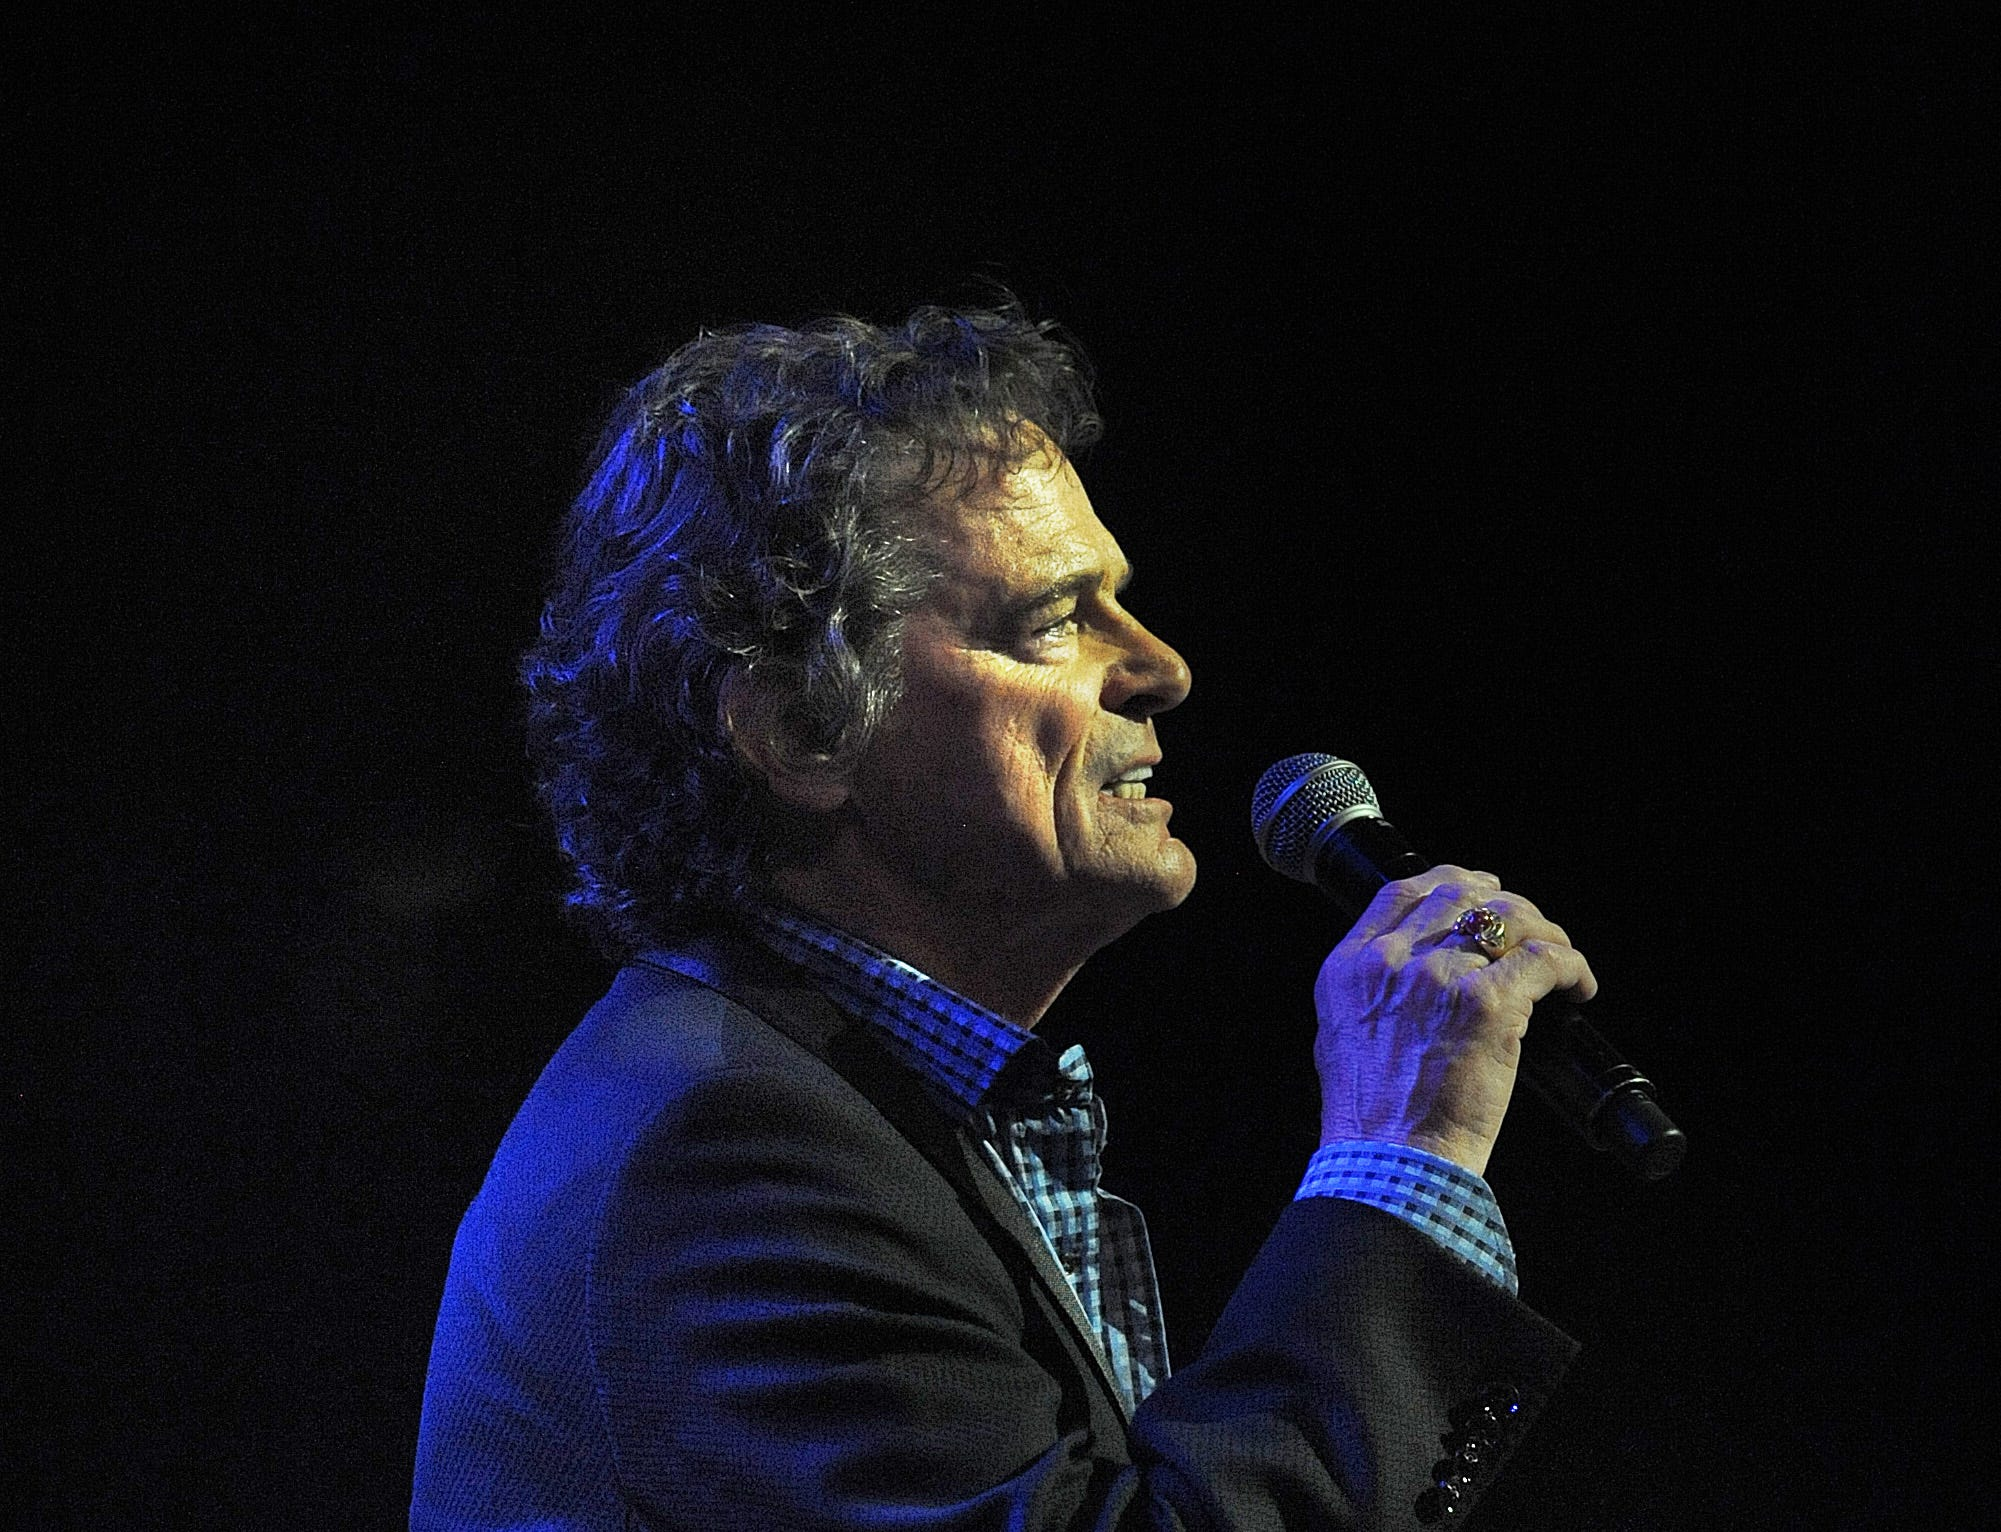 B.J. Thomas perform at theGgrand Ole Opry on Friday April 11, 2014, in Nashville.